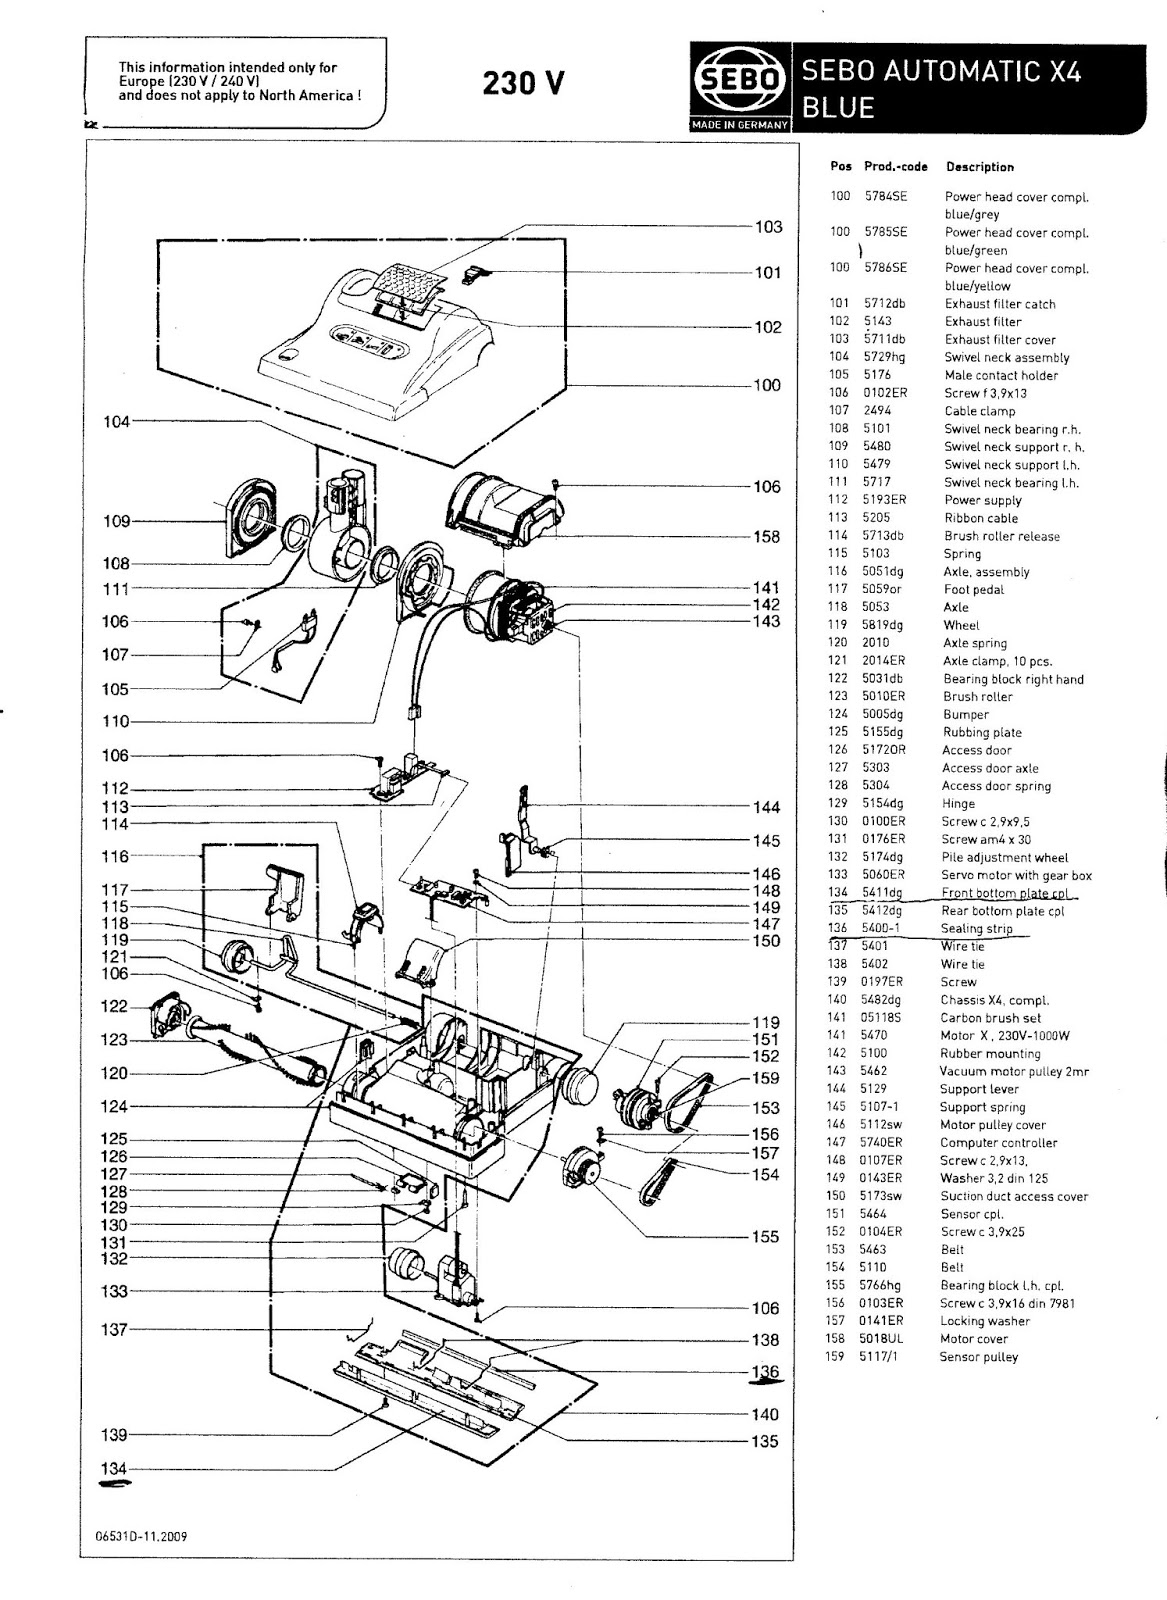 medium resolution of this is the parts diagram and exploded view for the sebo x4 vacuum with blue part numbers ideal for working out what you need and contacting